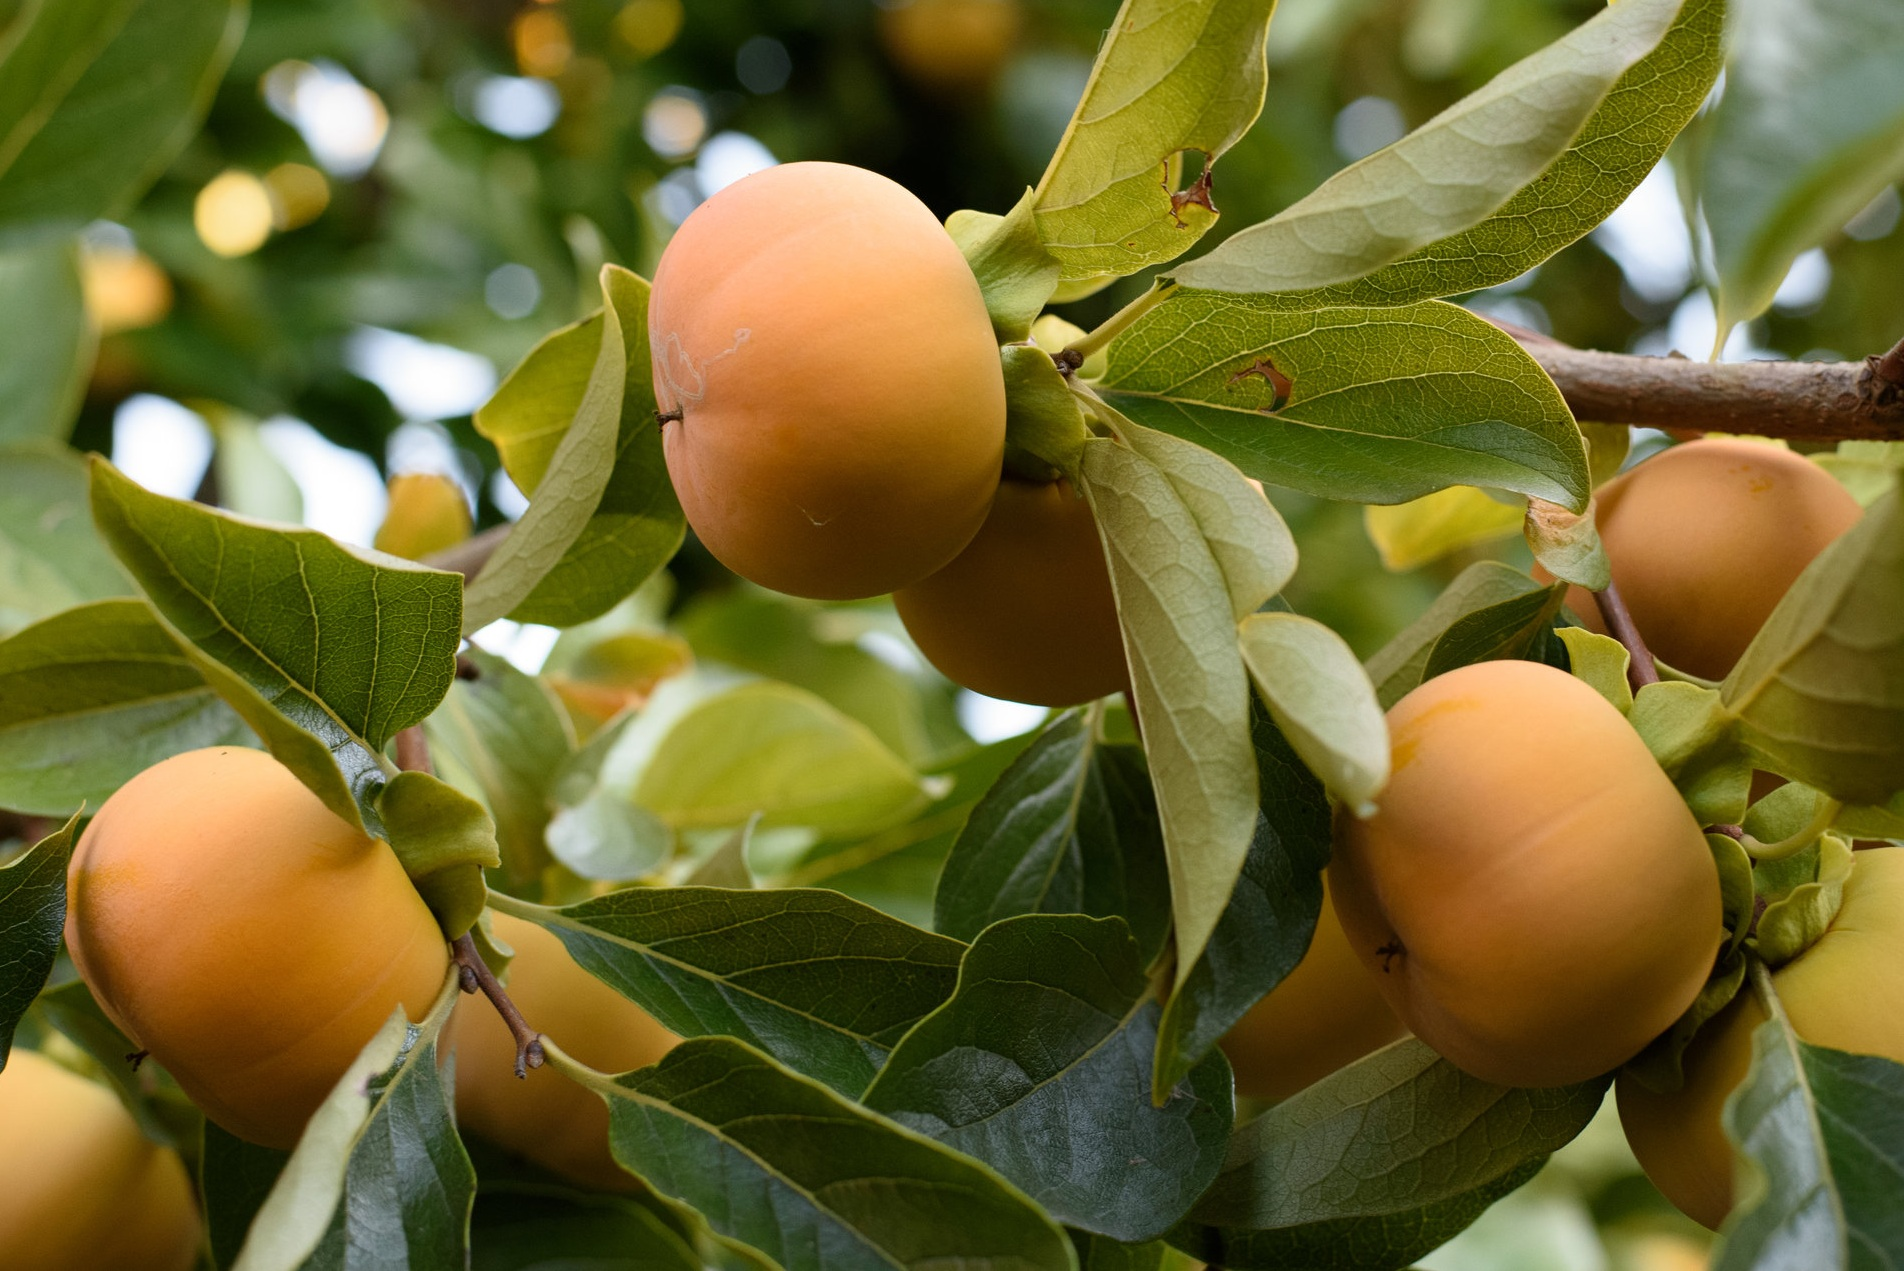 Project Persimmon - Selling backyard-harvested persimmons to local food establishments